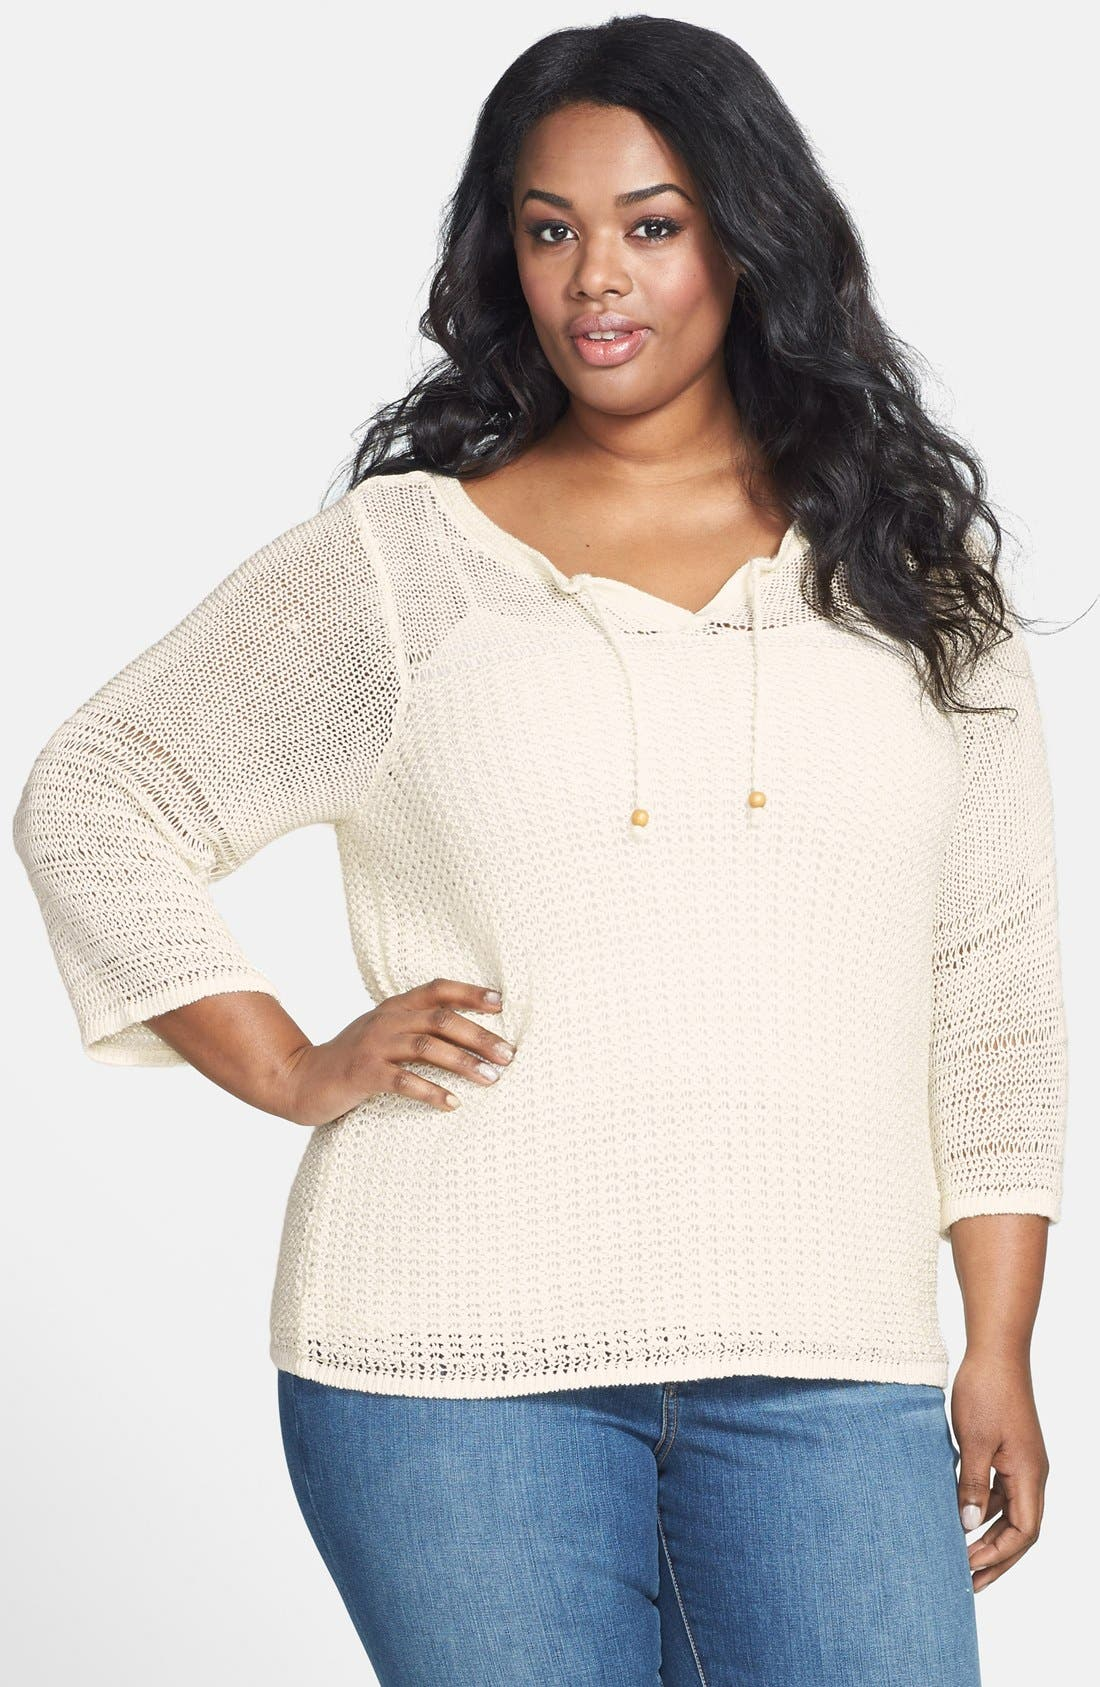 Alternate Image 1 Selected - Lucky Brand 'Millbrae' Bell Sleeve Sweater (Plus Size)